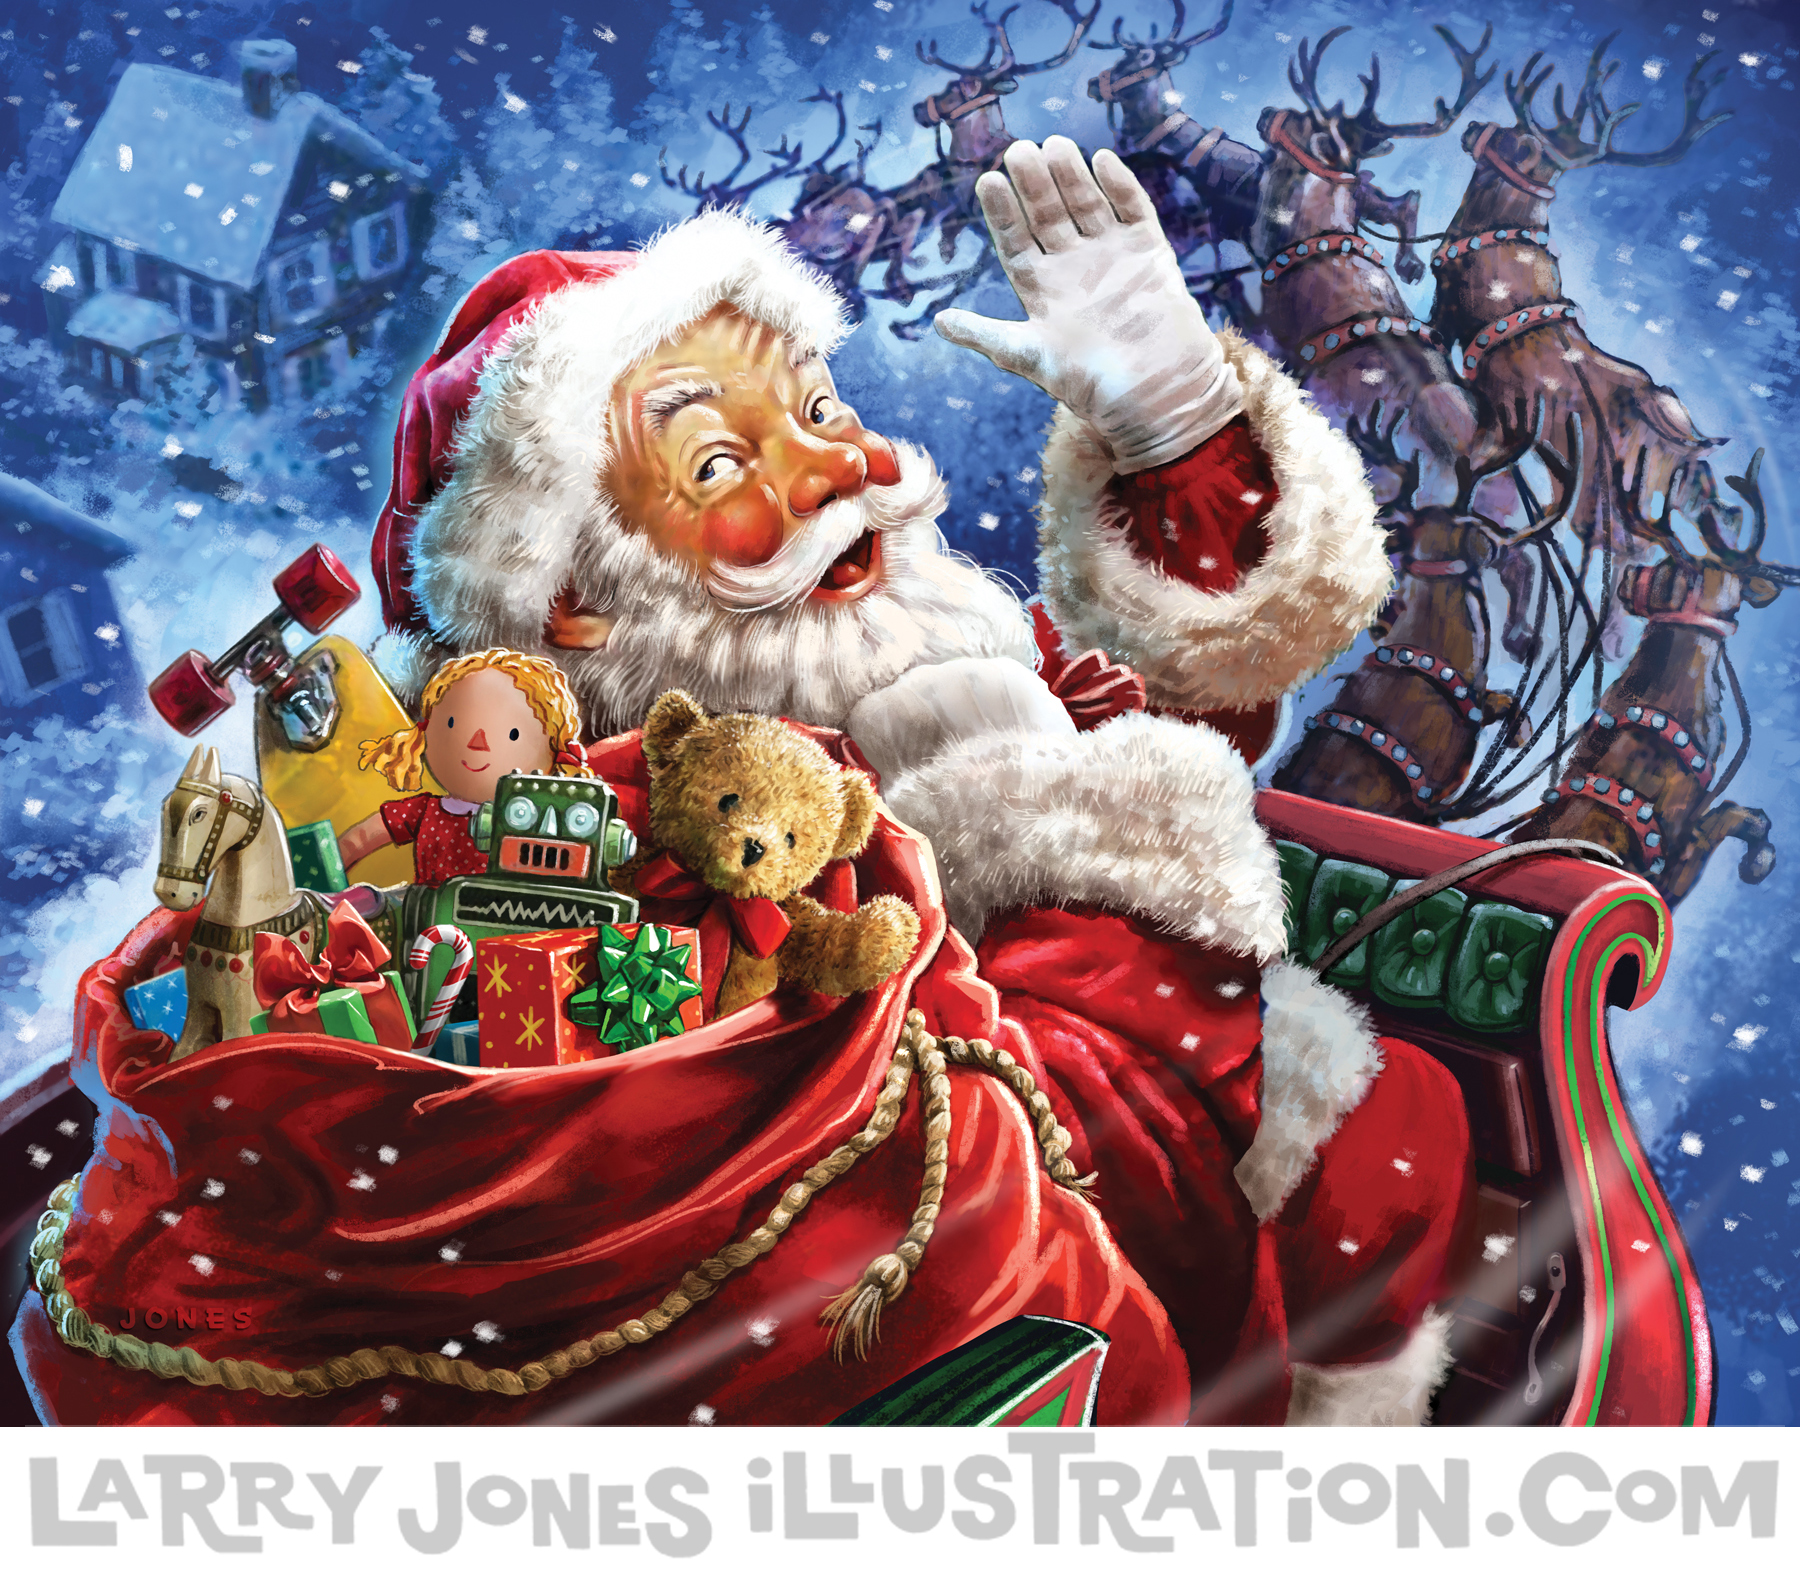 santa-sleigh-illustration.jpg